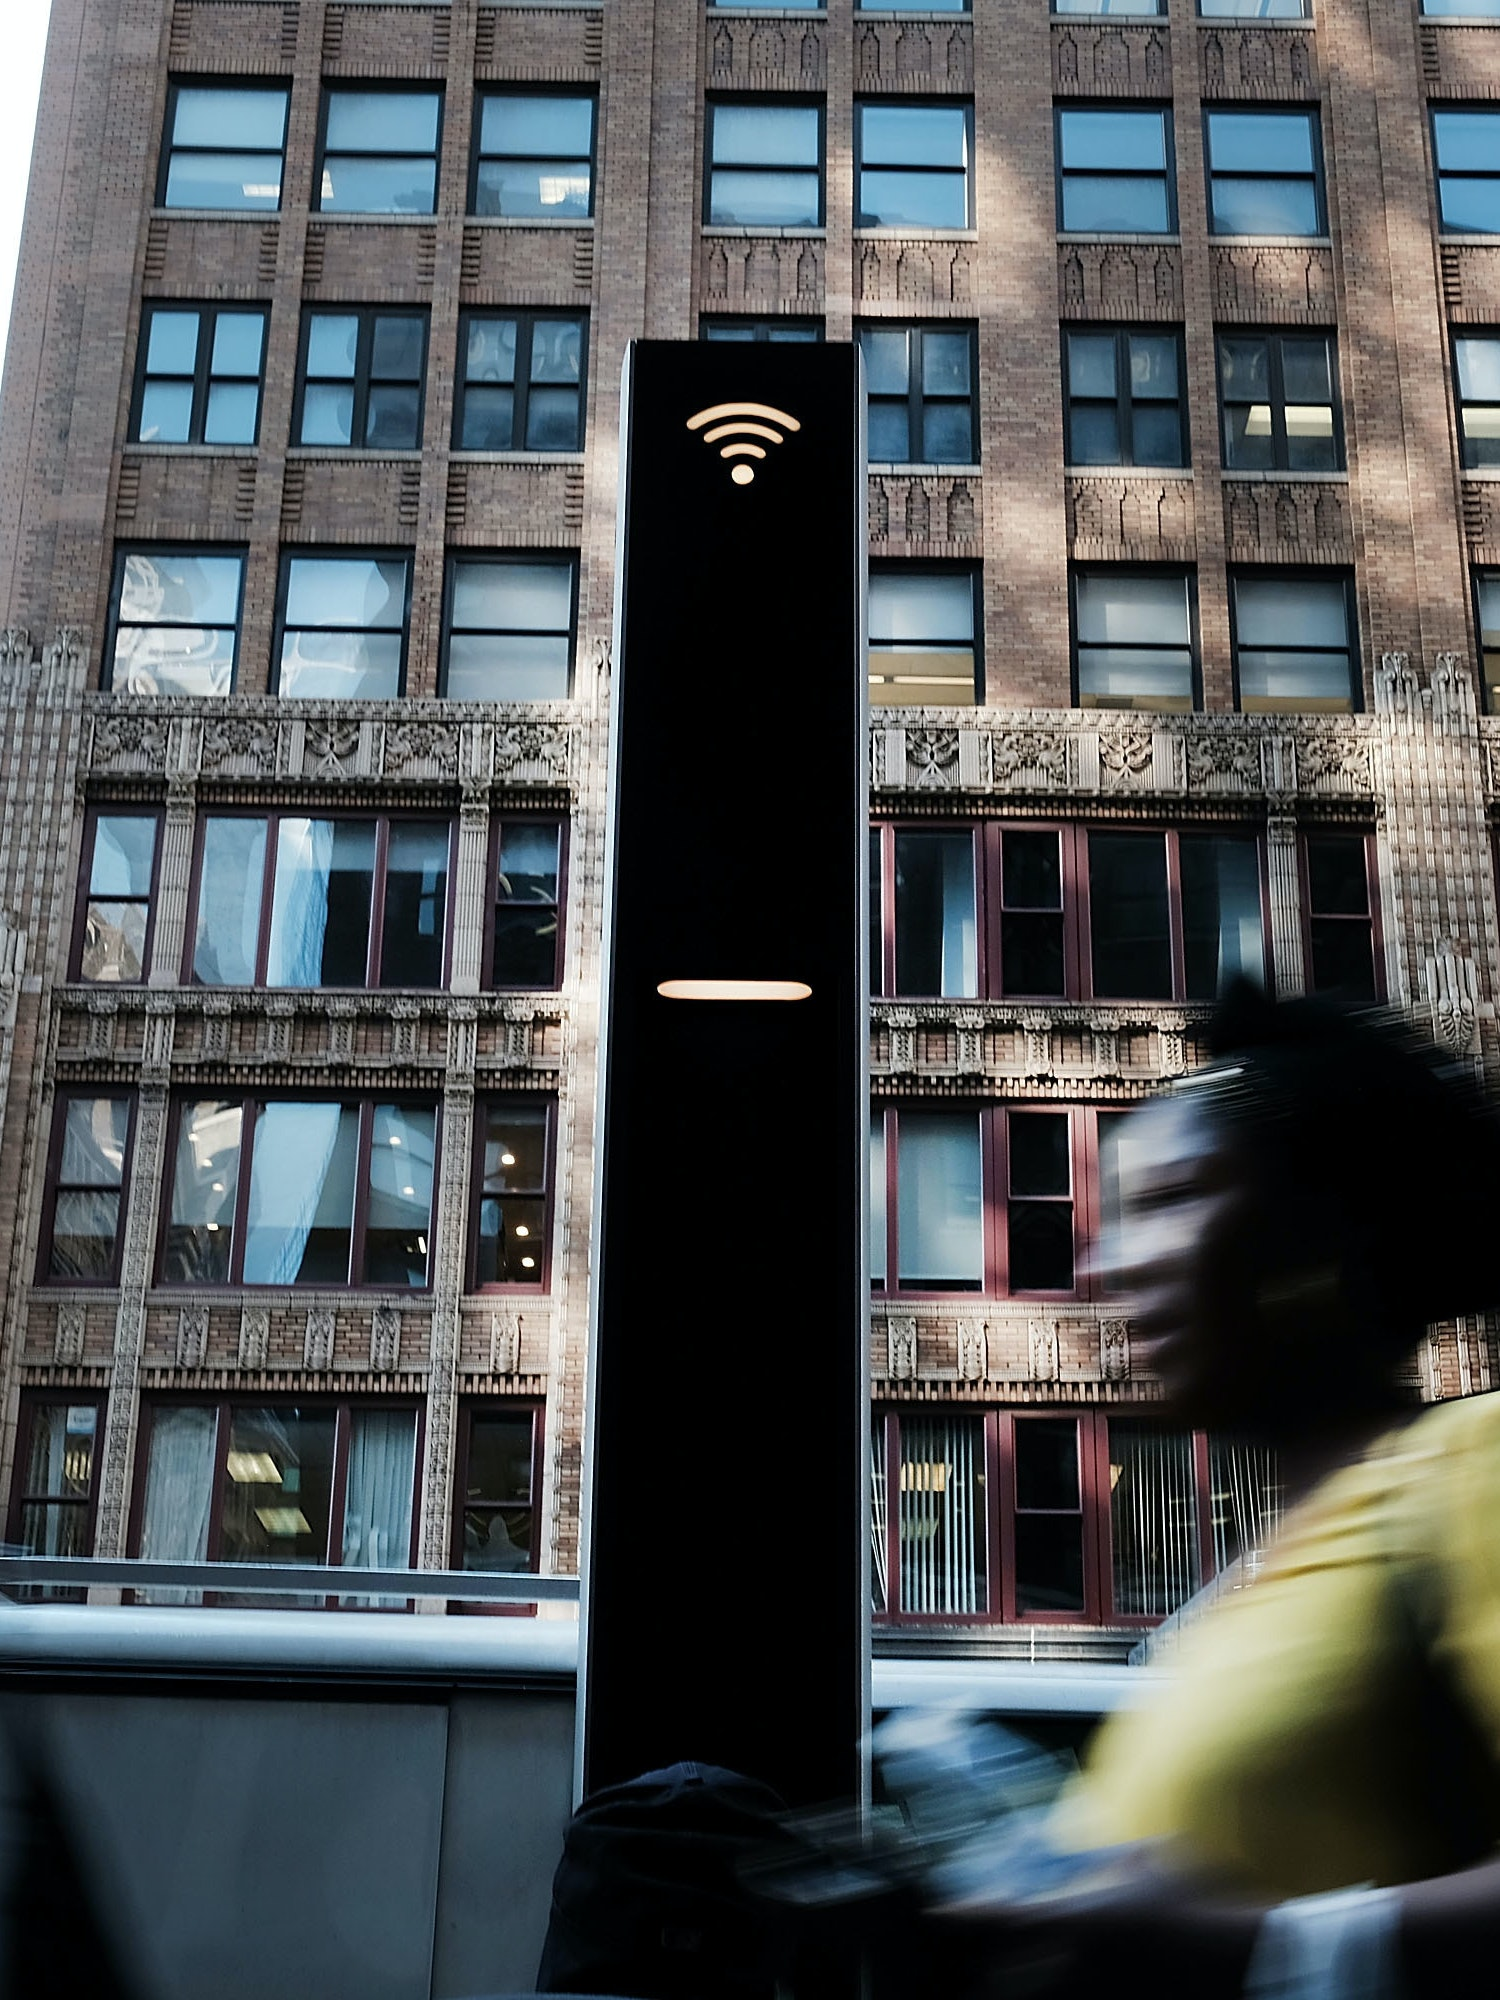 NEW YORK, NY - AUGUST 24:  Pedestrians pass one of the new Wi-Fi kiosks that offer free web surfing, phone calls and a charging station on August 24, 2016 in New York City. The LinkNYC terminals, which number around 300 in Manhattan, have become especially popular with both the homeless and panhandlers. The free kiosks are being installed to replace obsolete pay phones around Manhattan.  (Photo by Spencer Platt/Getty Images)